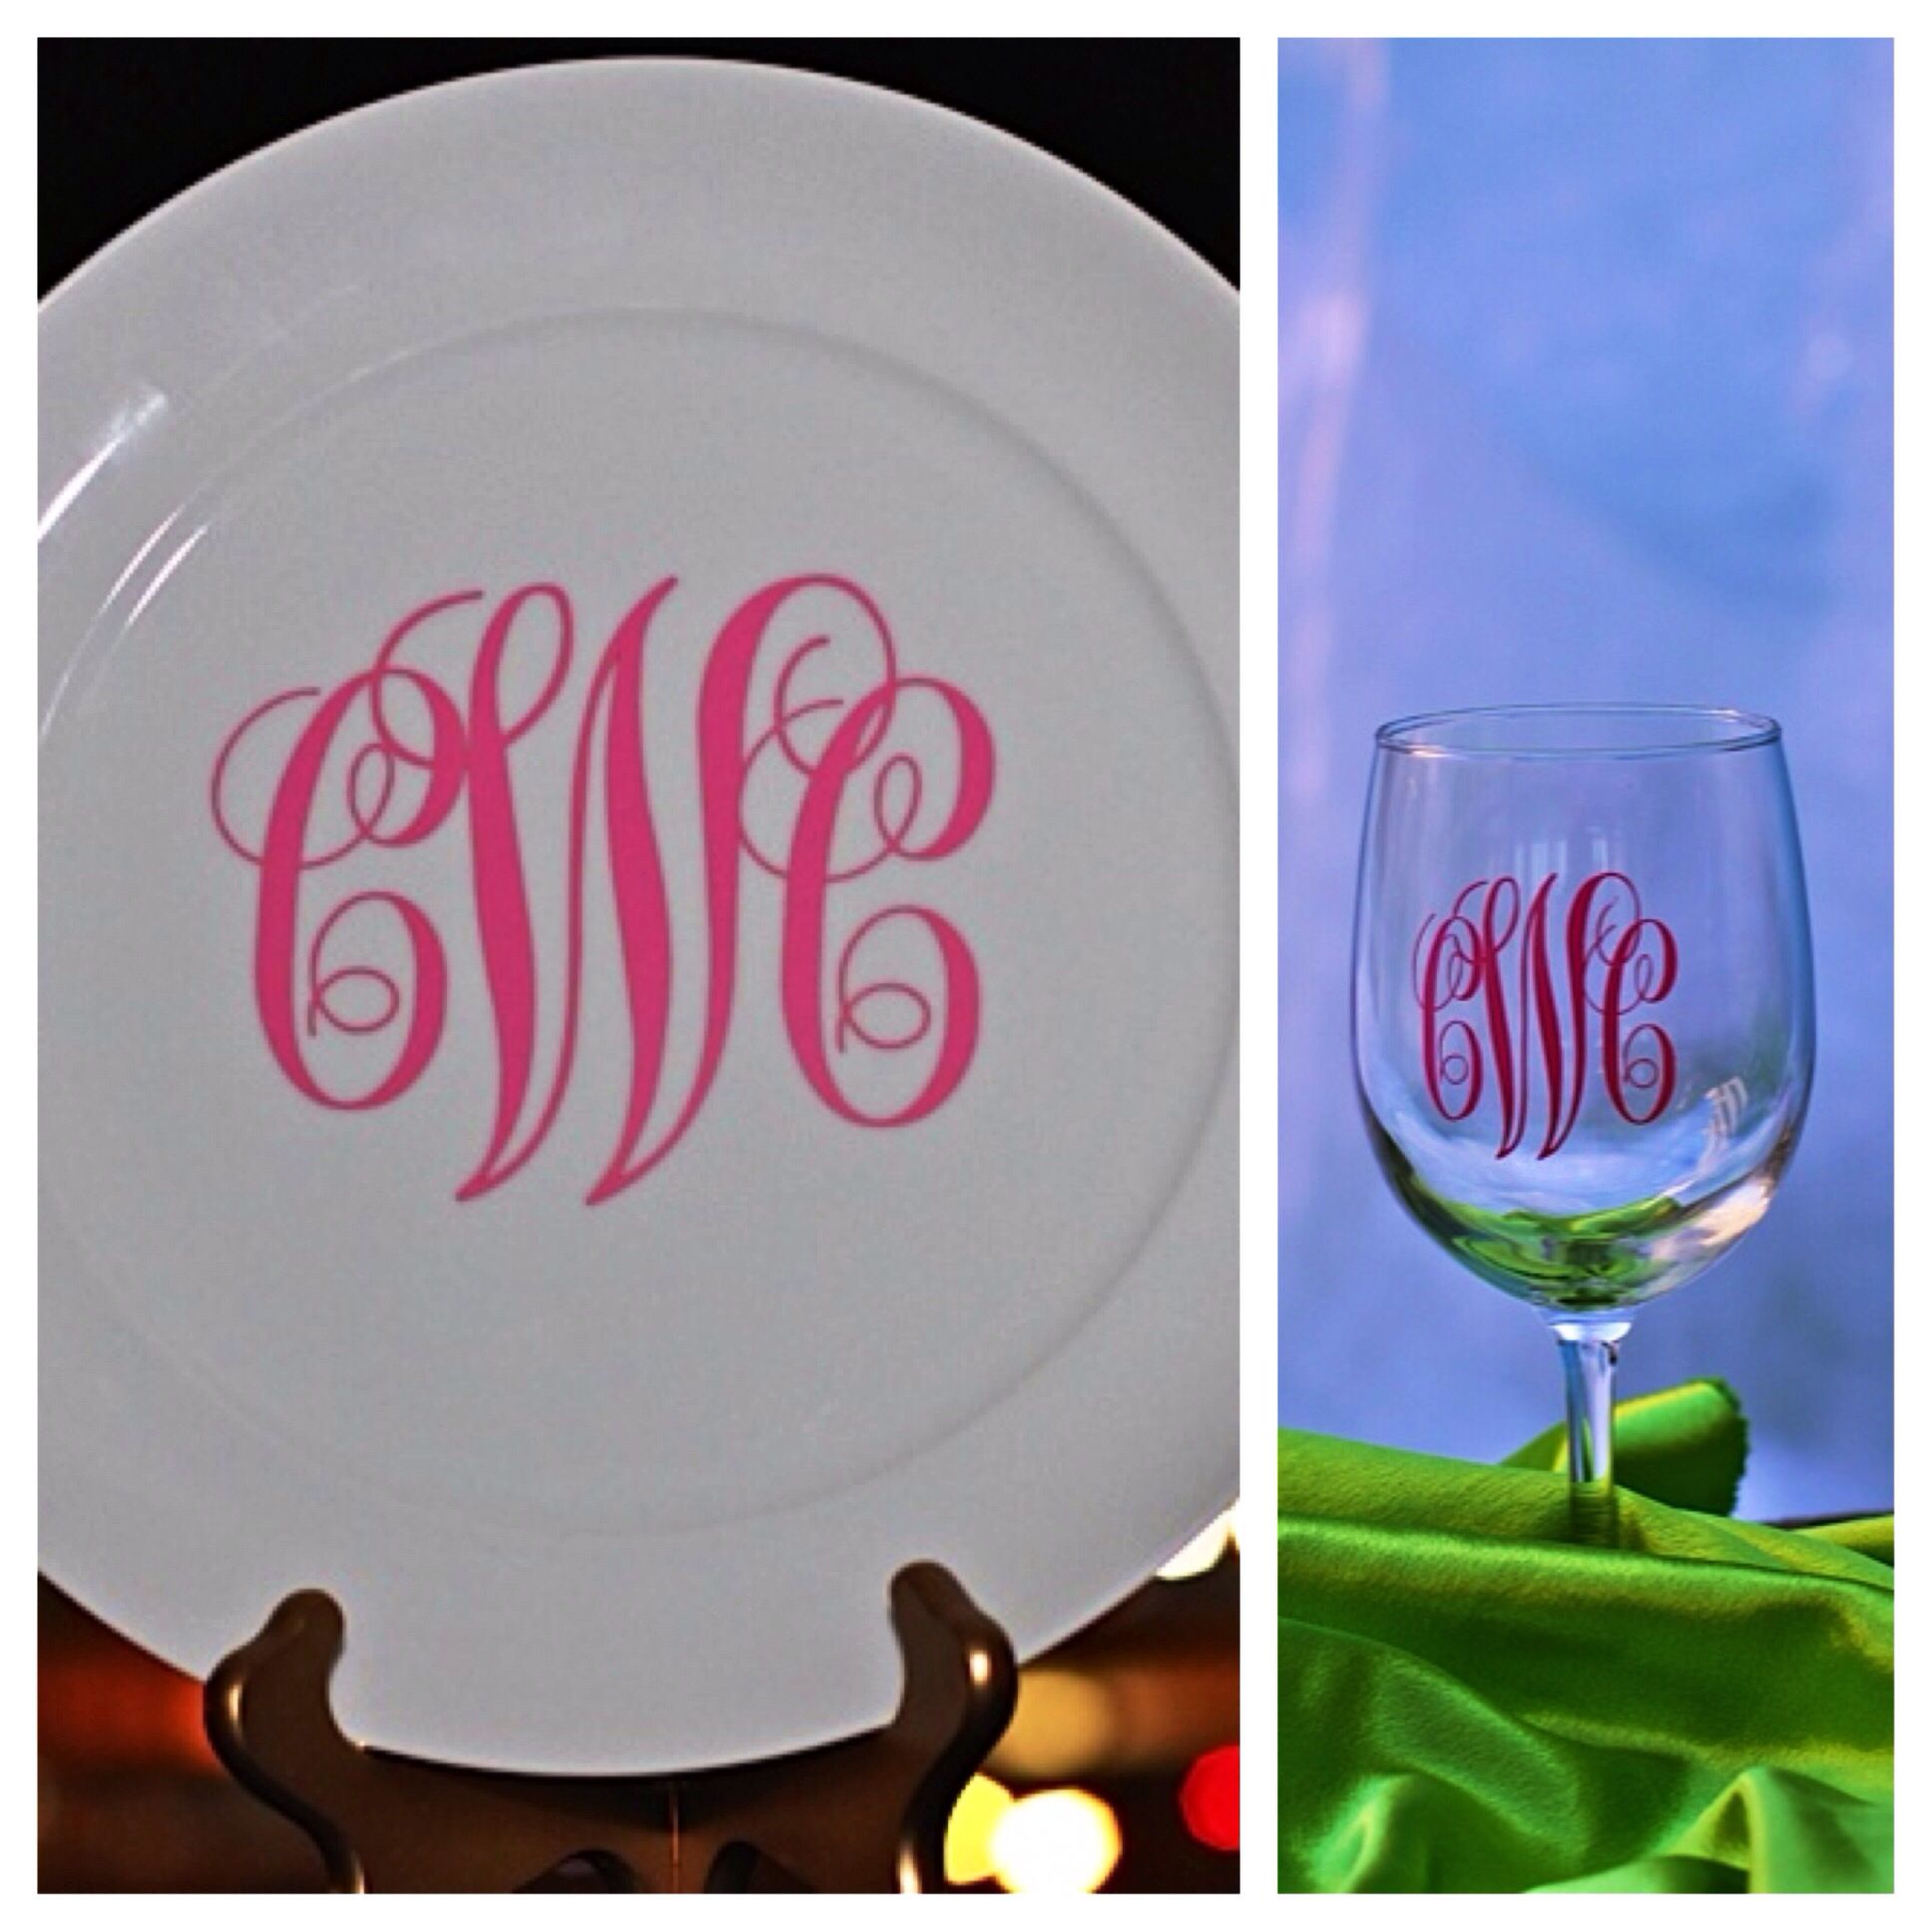 Monogram Plates And Glasses Are A Southern Girl S Rite Of